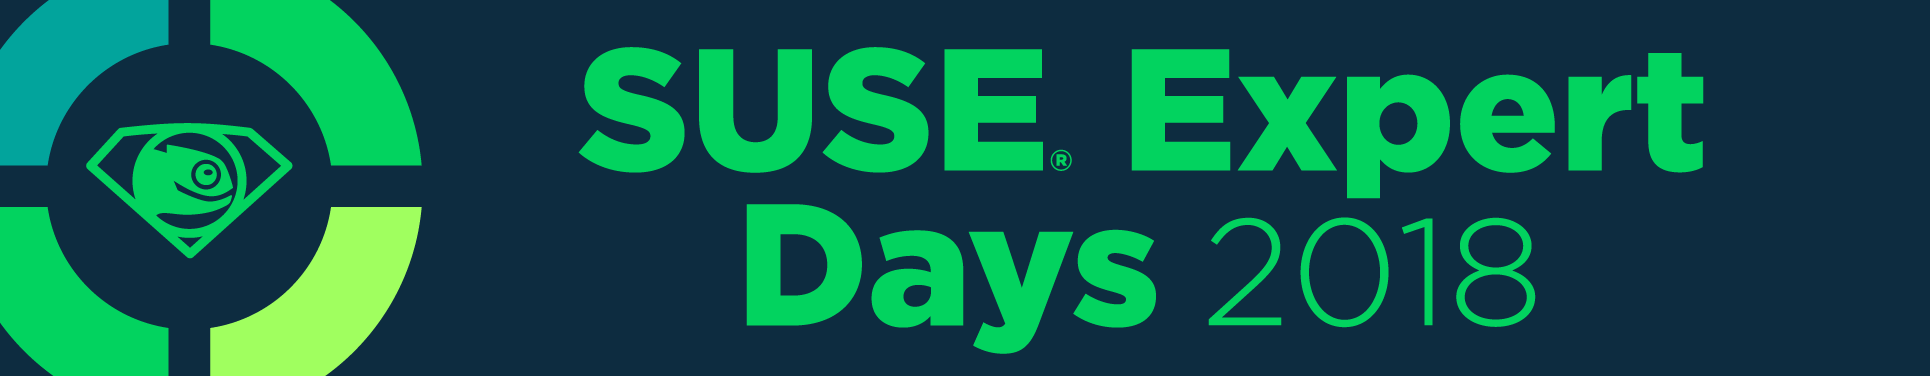 2018 NA SUSE Expert Days - Chicago, IL